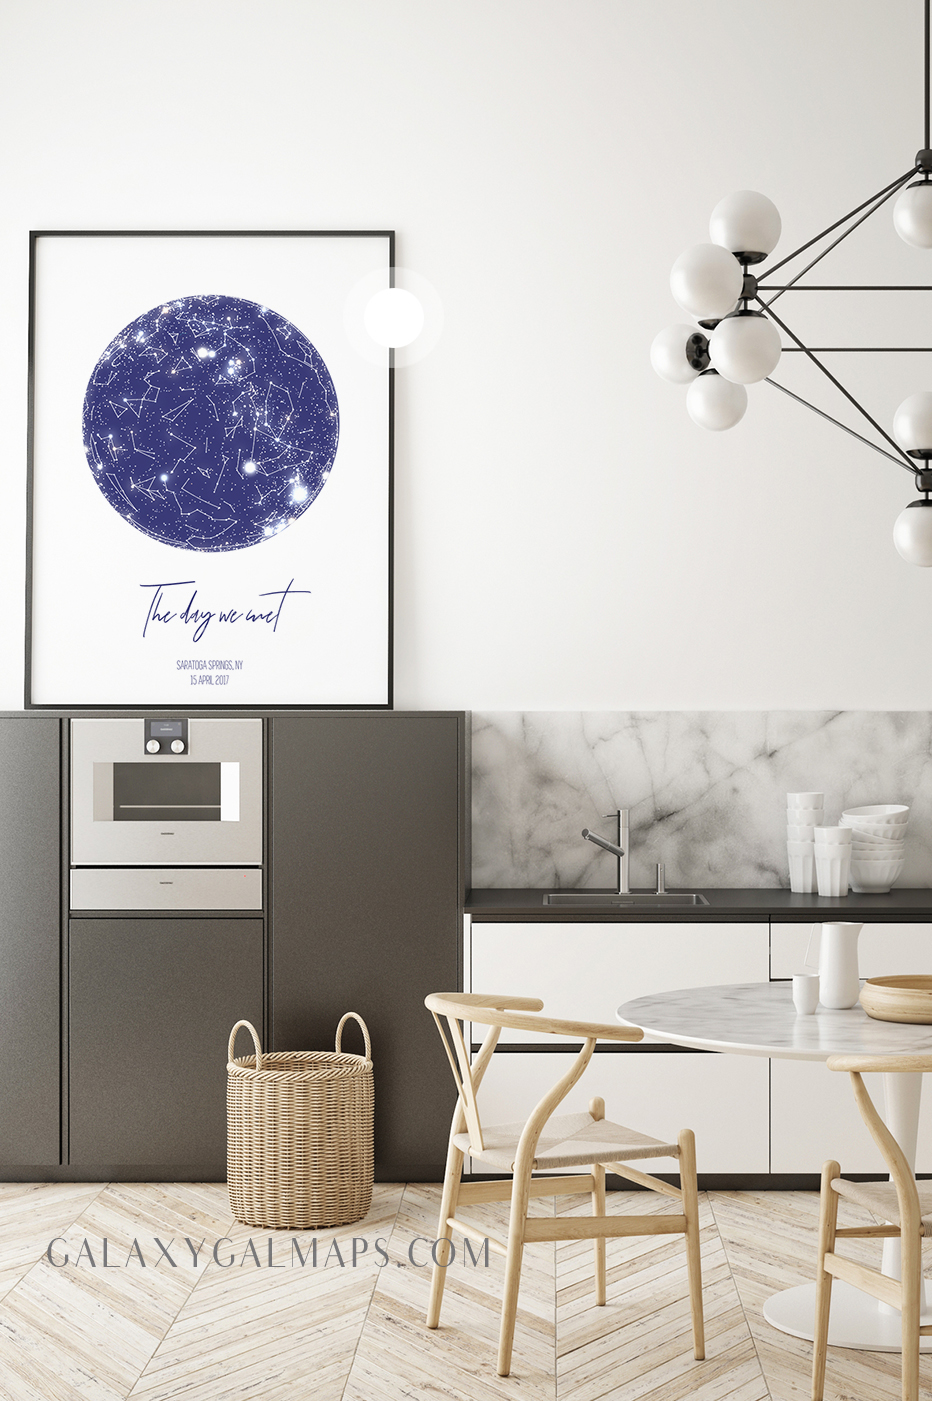 sky map for your date where it all began wall art first dance song lyrics first dance love song first year wedding anniversary wedding song